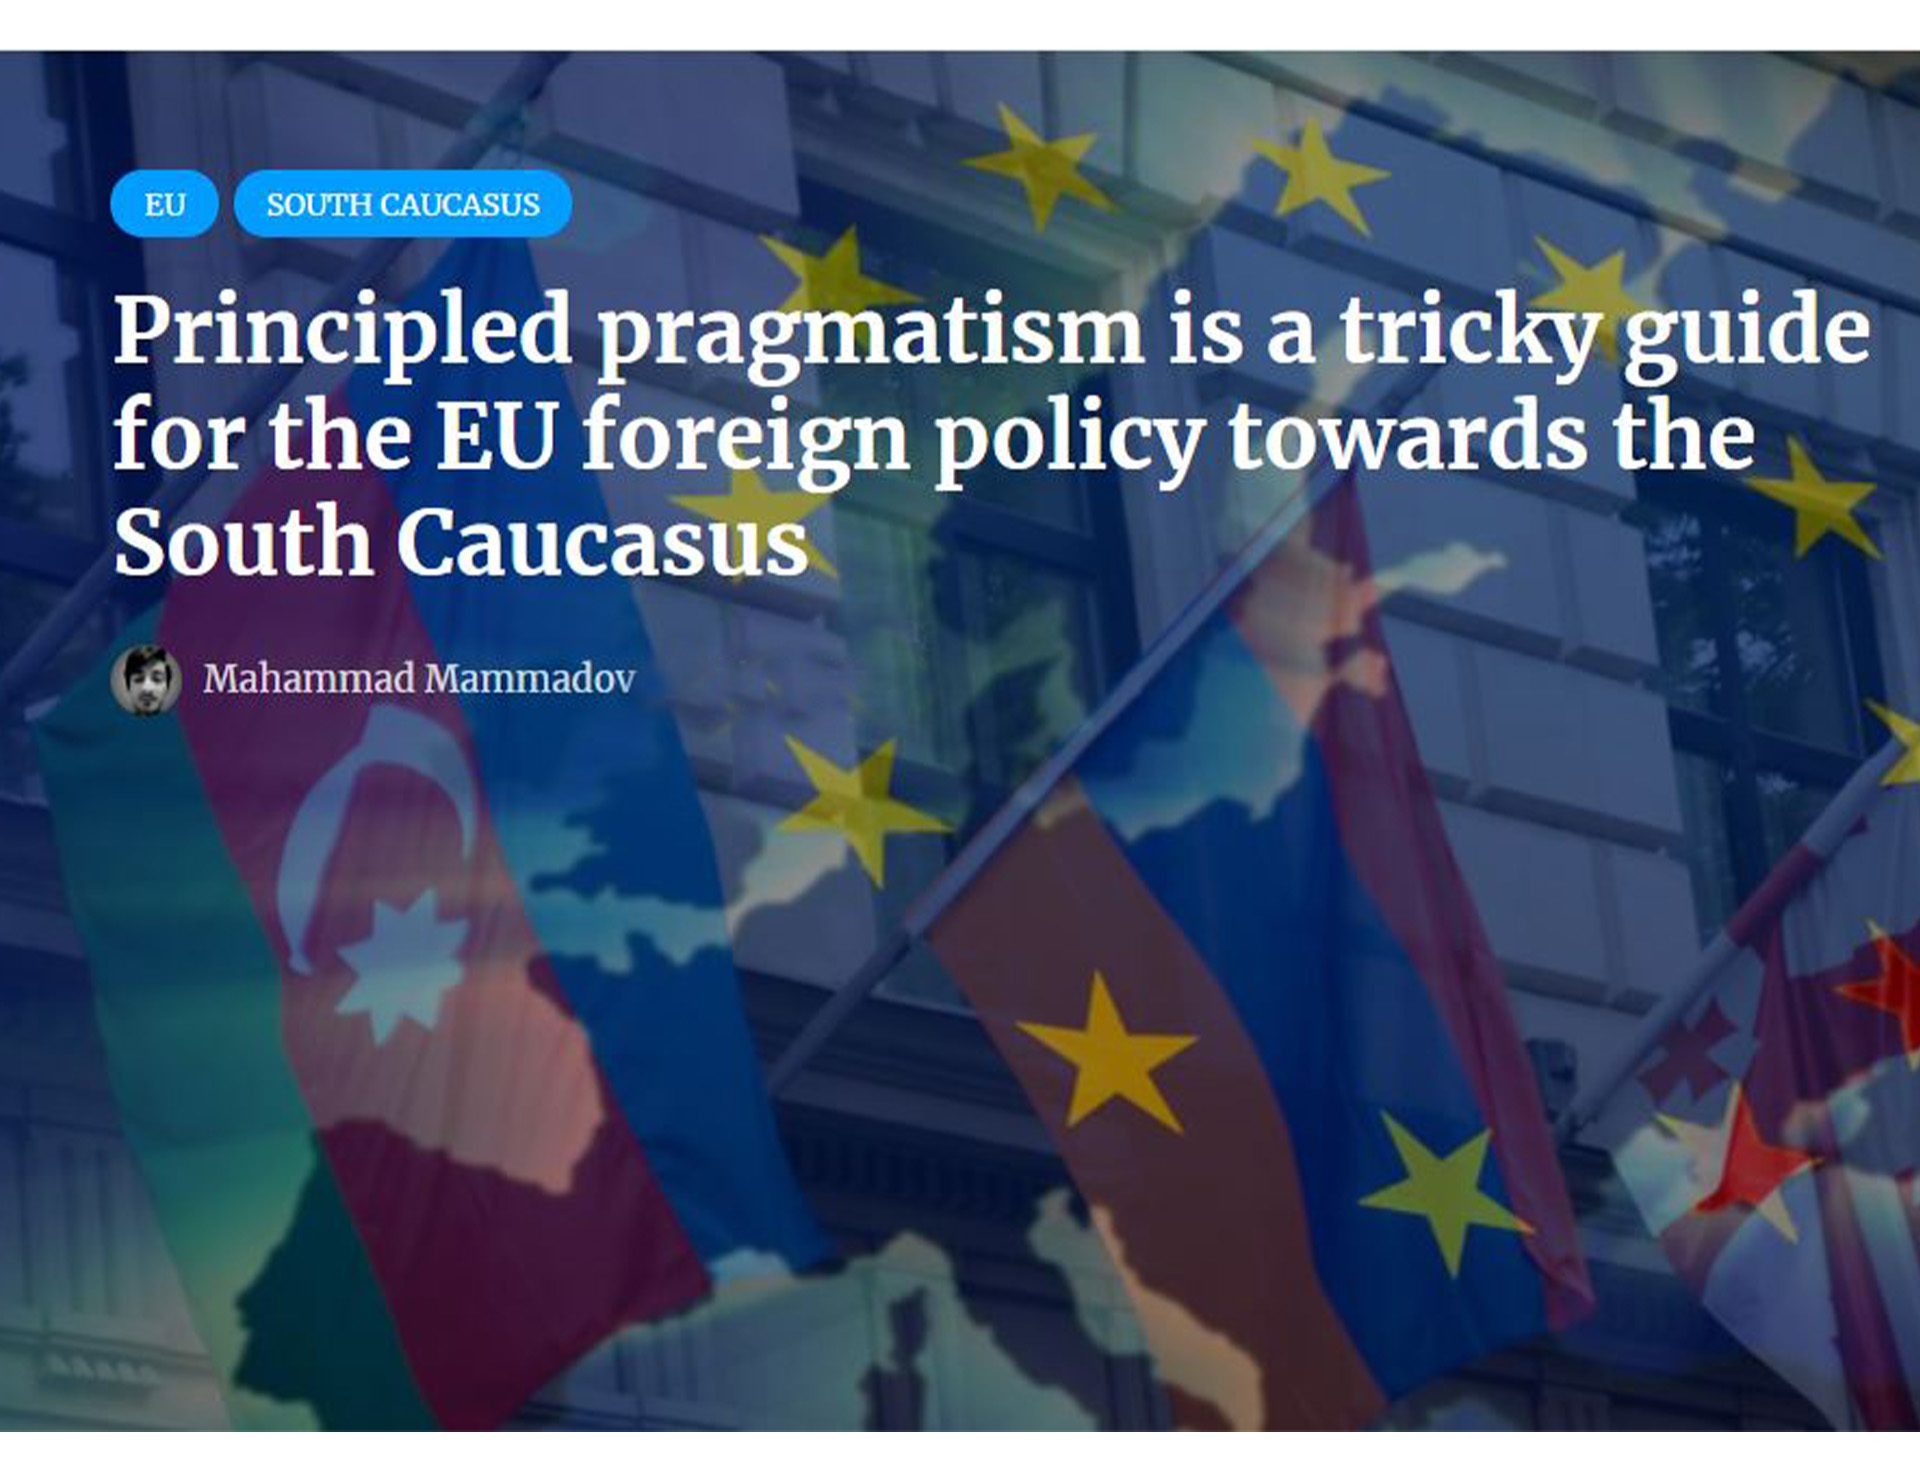 Principled pragmatism is a tricky guide for the EU foreign policy towards the South Caucasus